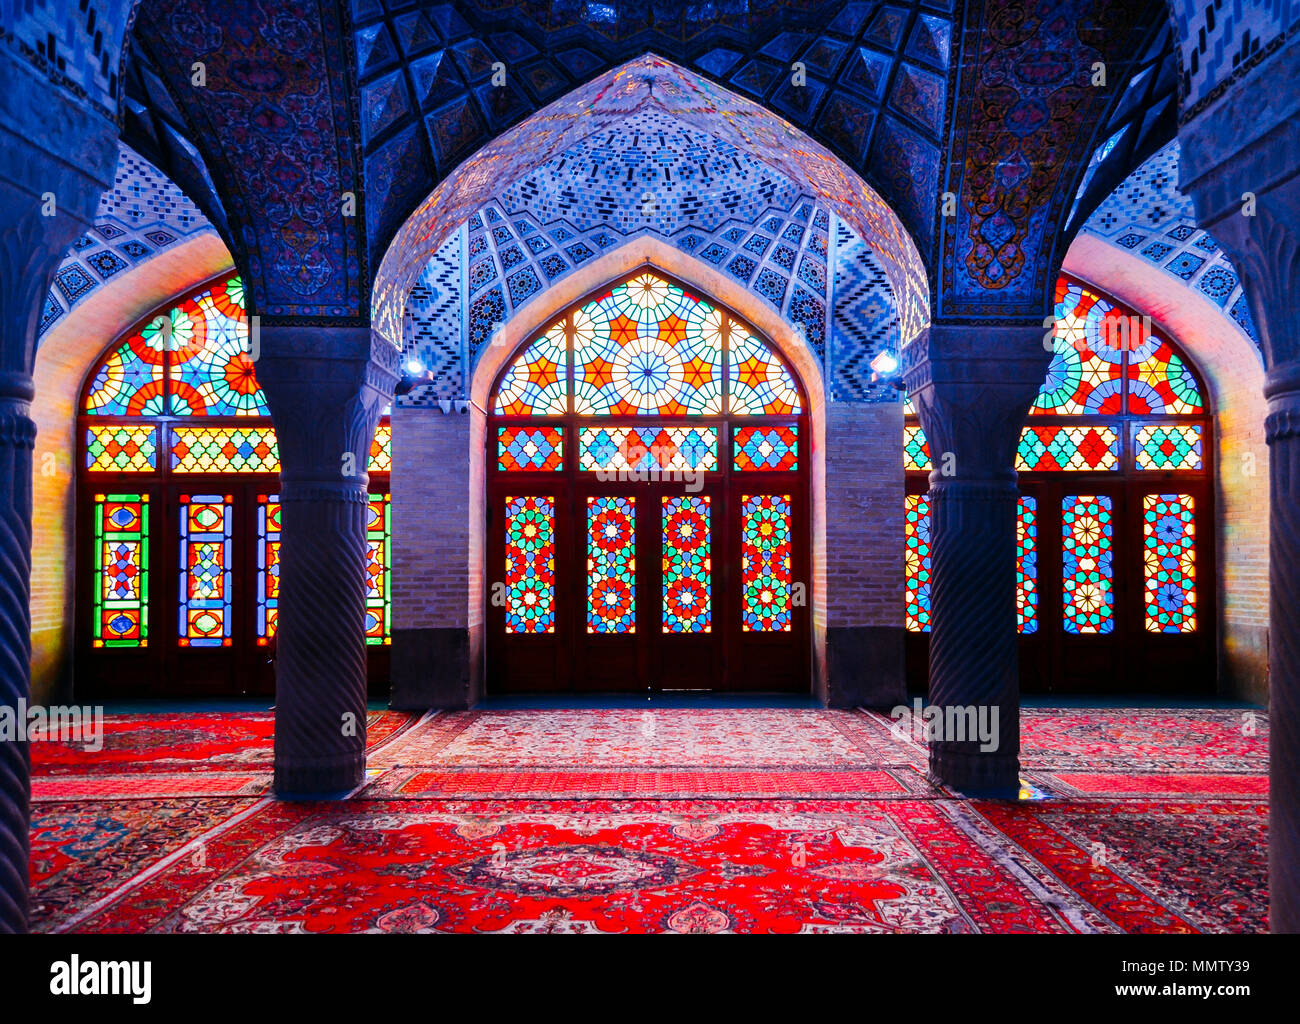 nasir-al-mulk-mosque-in-shiraz-iran-also-known-as-pink-mosque-MMTY39.jpg